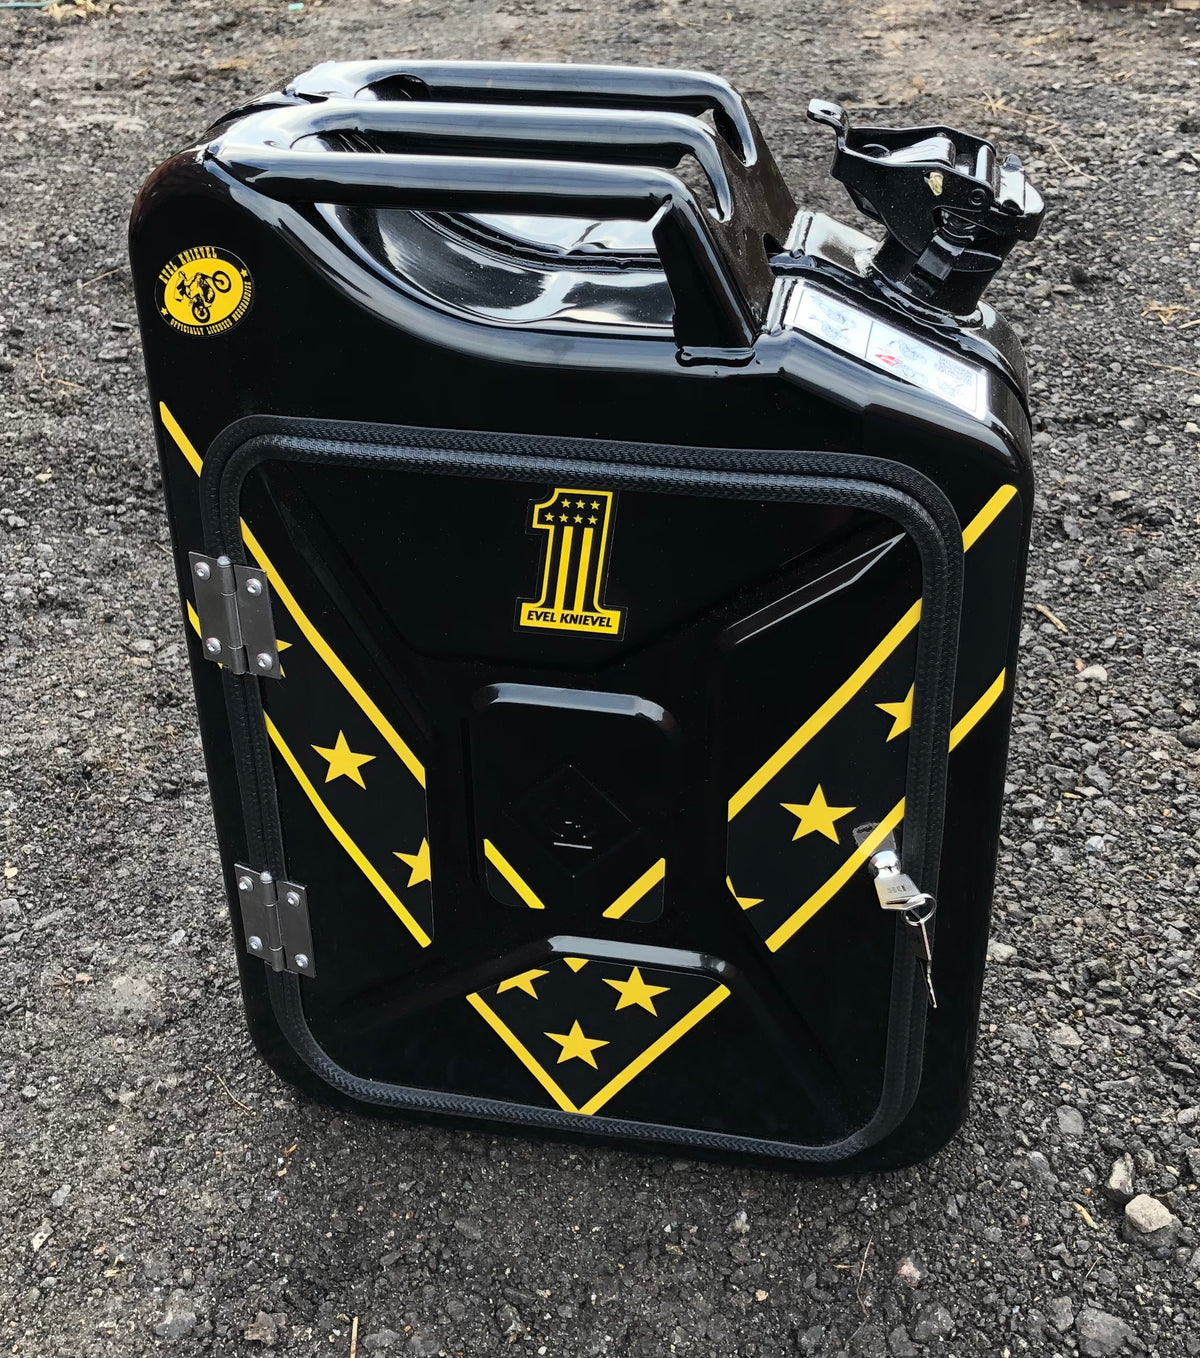 Limited edition yellow and black Evel Knievel Jerry can craft beer/soft drink bar(licensed)